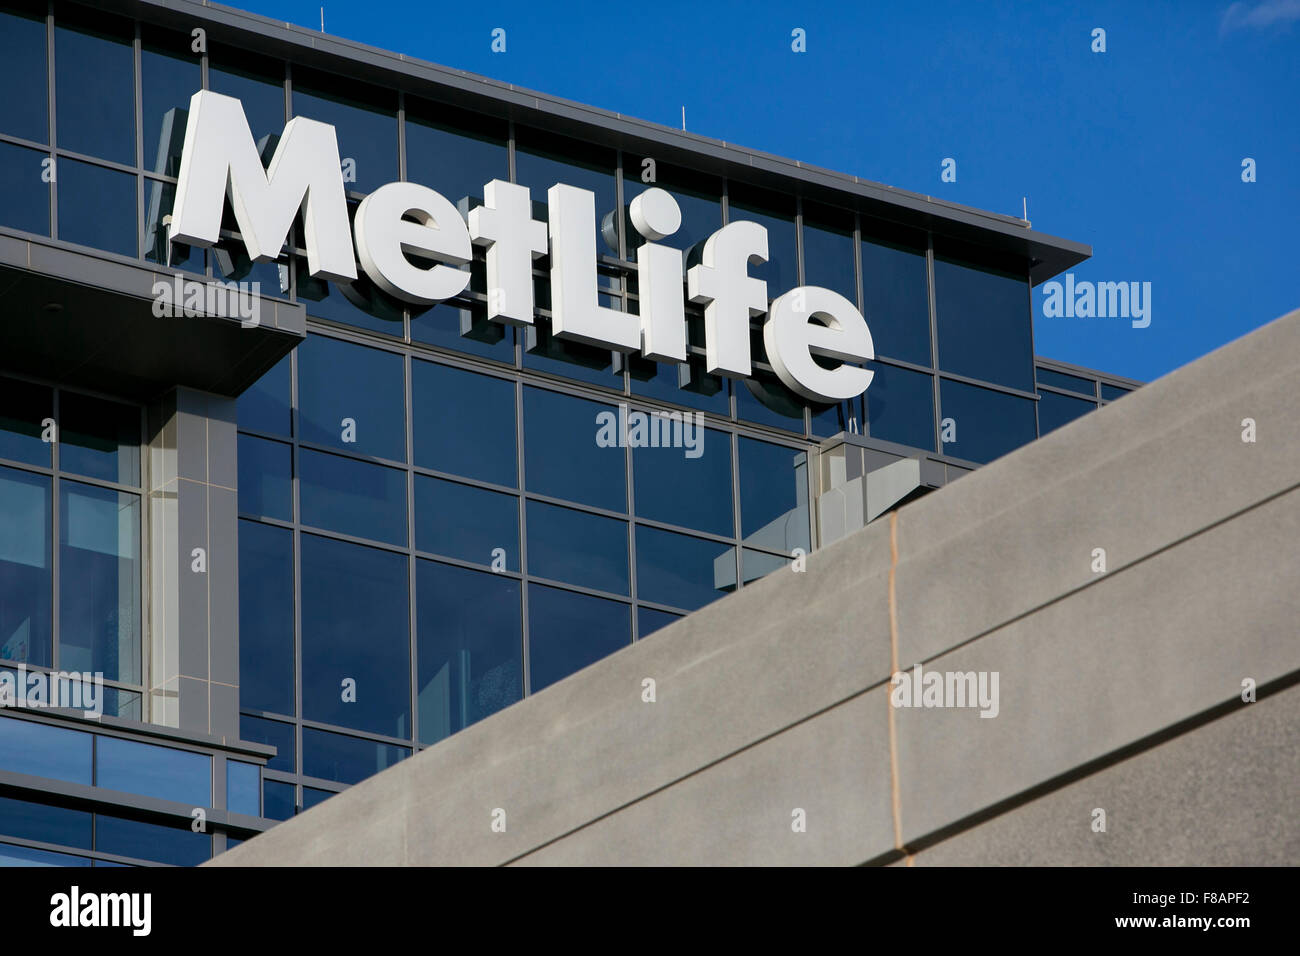 A logo sign outside of a facility occupied by MetLife, Inc., in Cary, North Carolina on November 29, 2015. - Stock Image